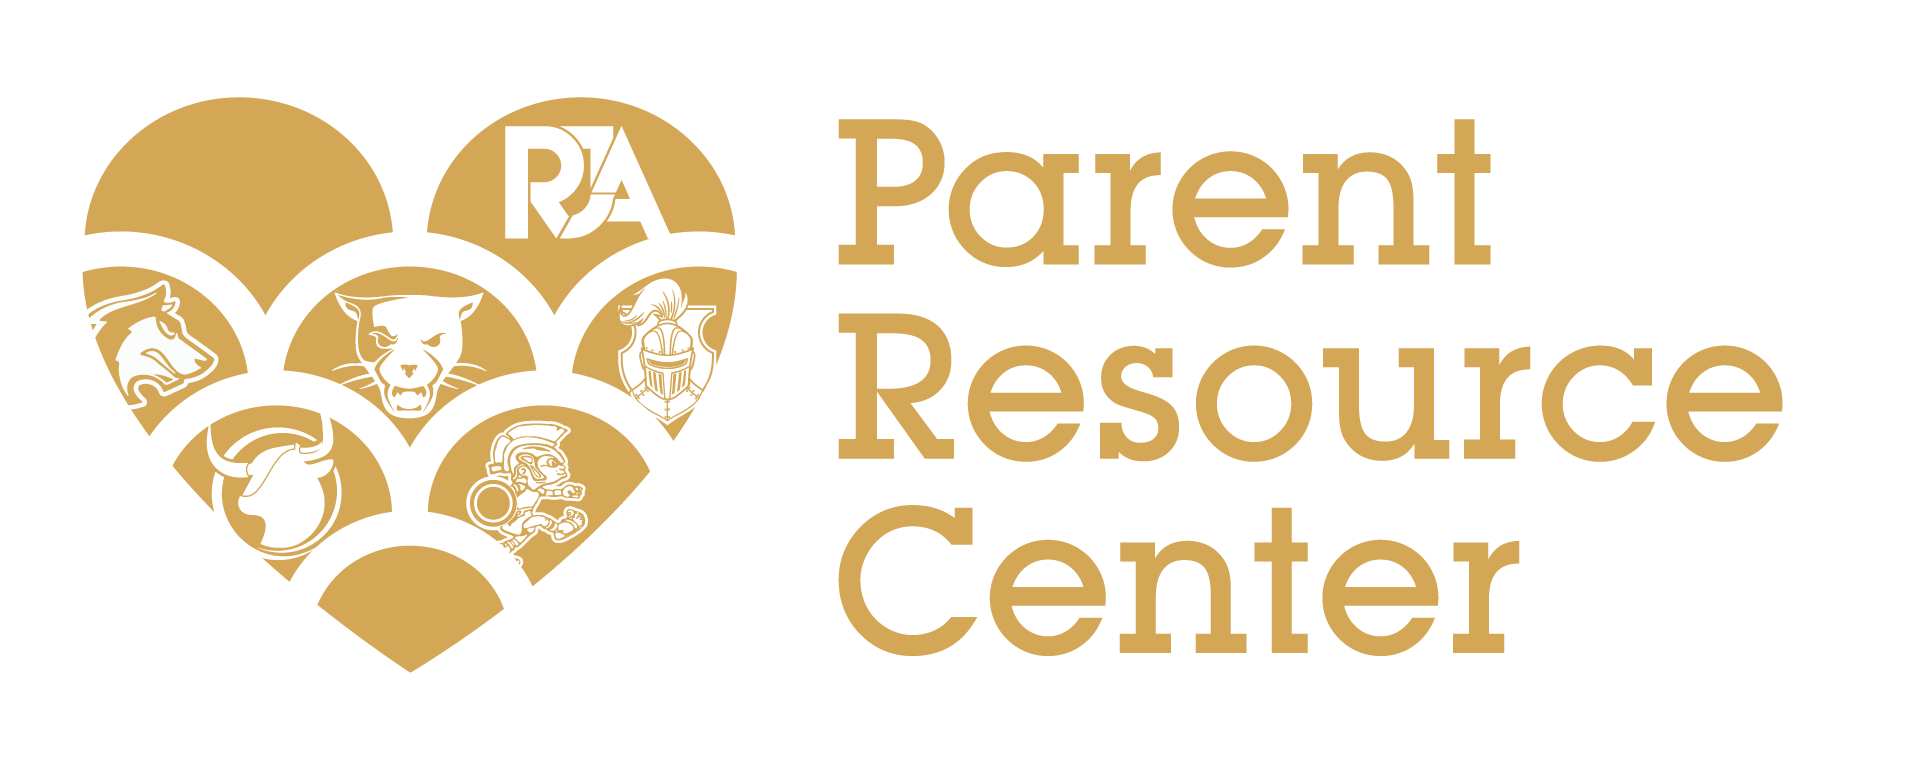 RJA Parent Resource Center logo in iEmpire colors (gold). To the left is a heart with all school logos and to the right reads Parent Resource Center